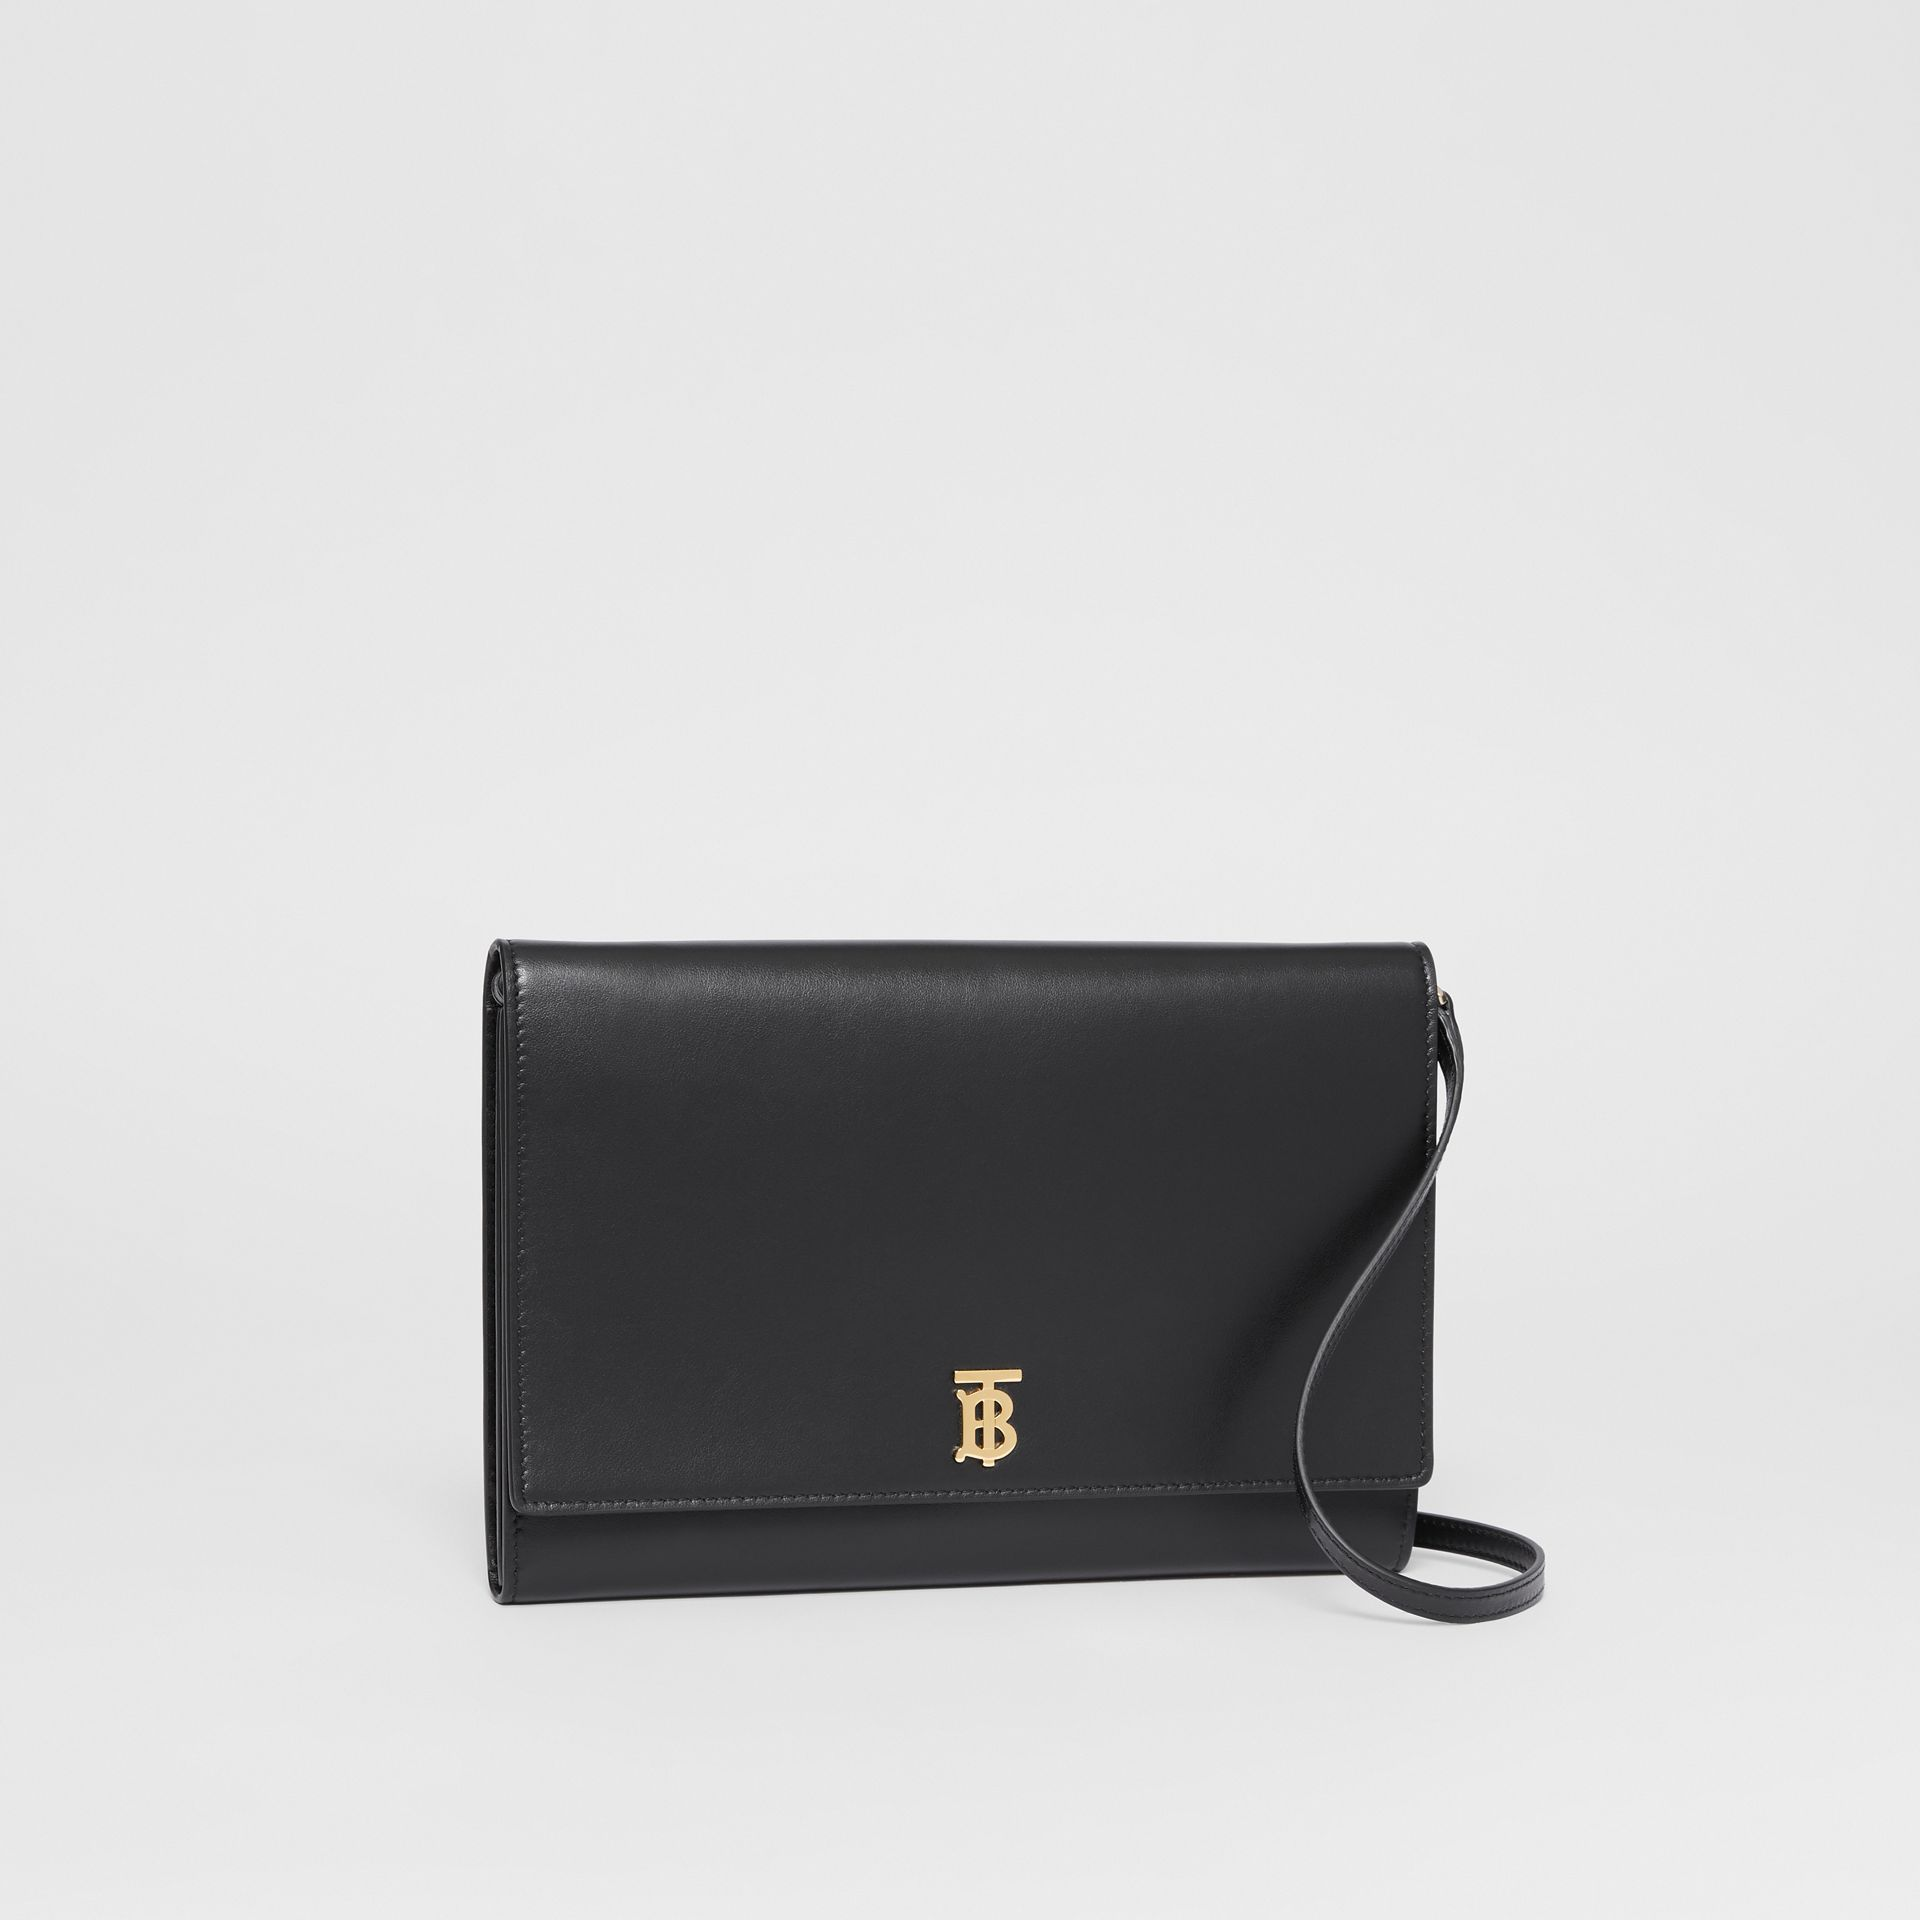 Monogram Motif Leather Bag with Detachable Strap in Black - Women | Burberry Australia - gallery image 6